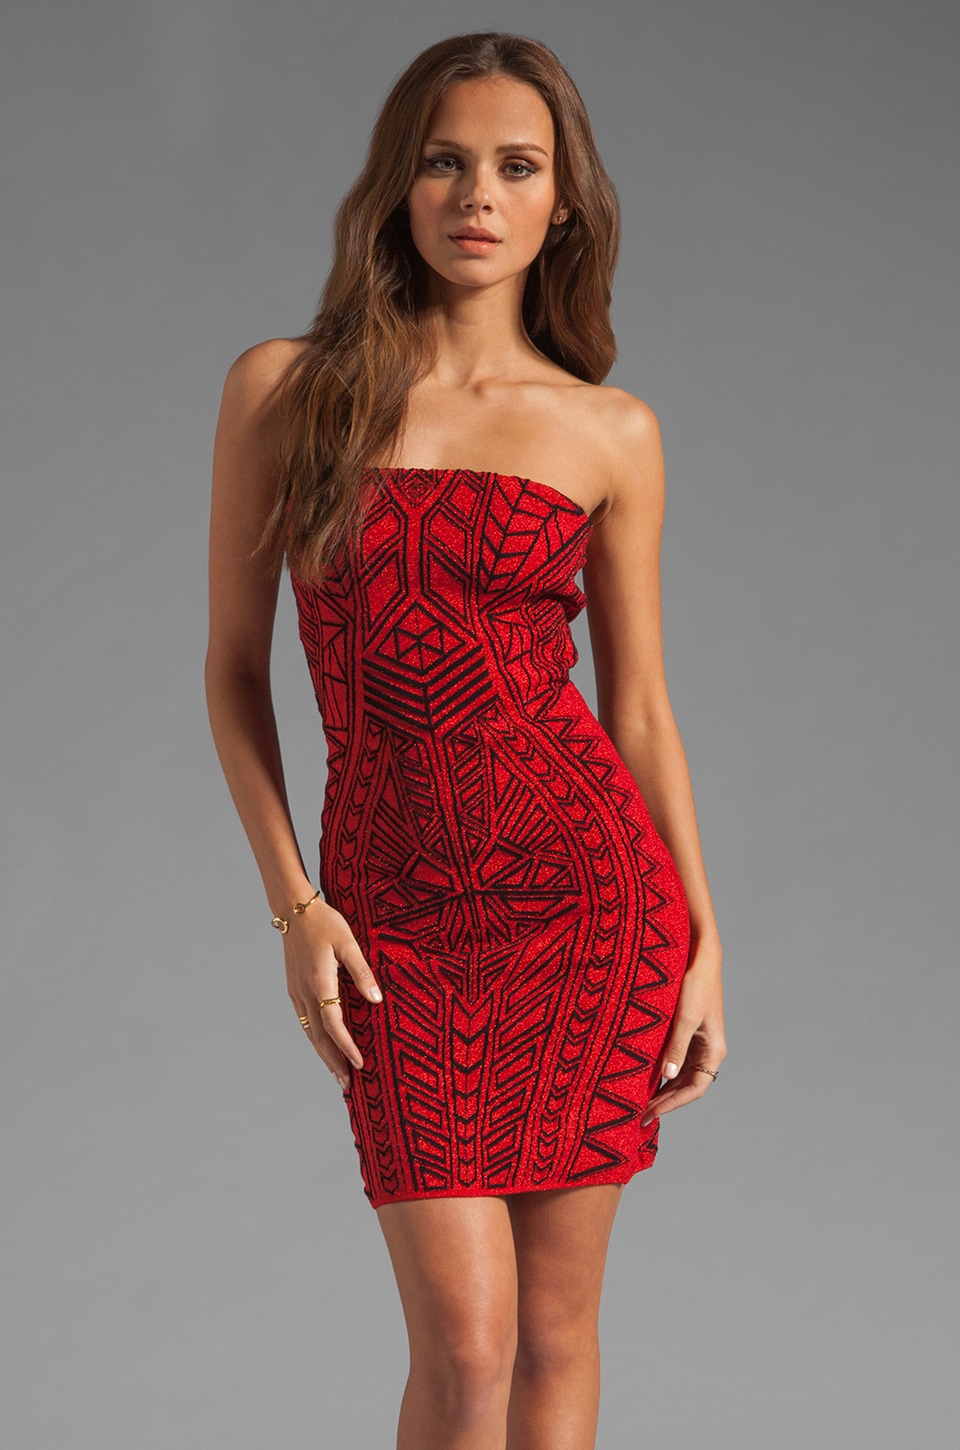 RVN Abstract Jacquard Strapless Dress in Black/Red Lurex